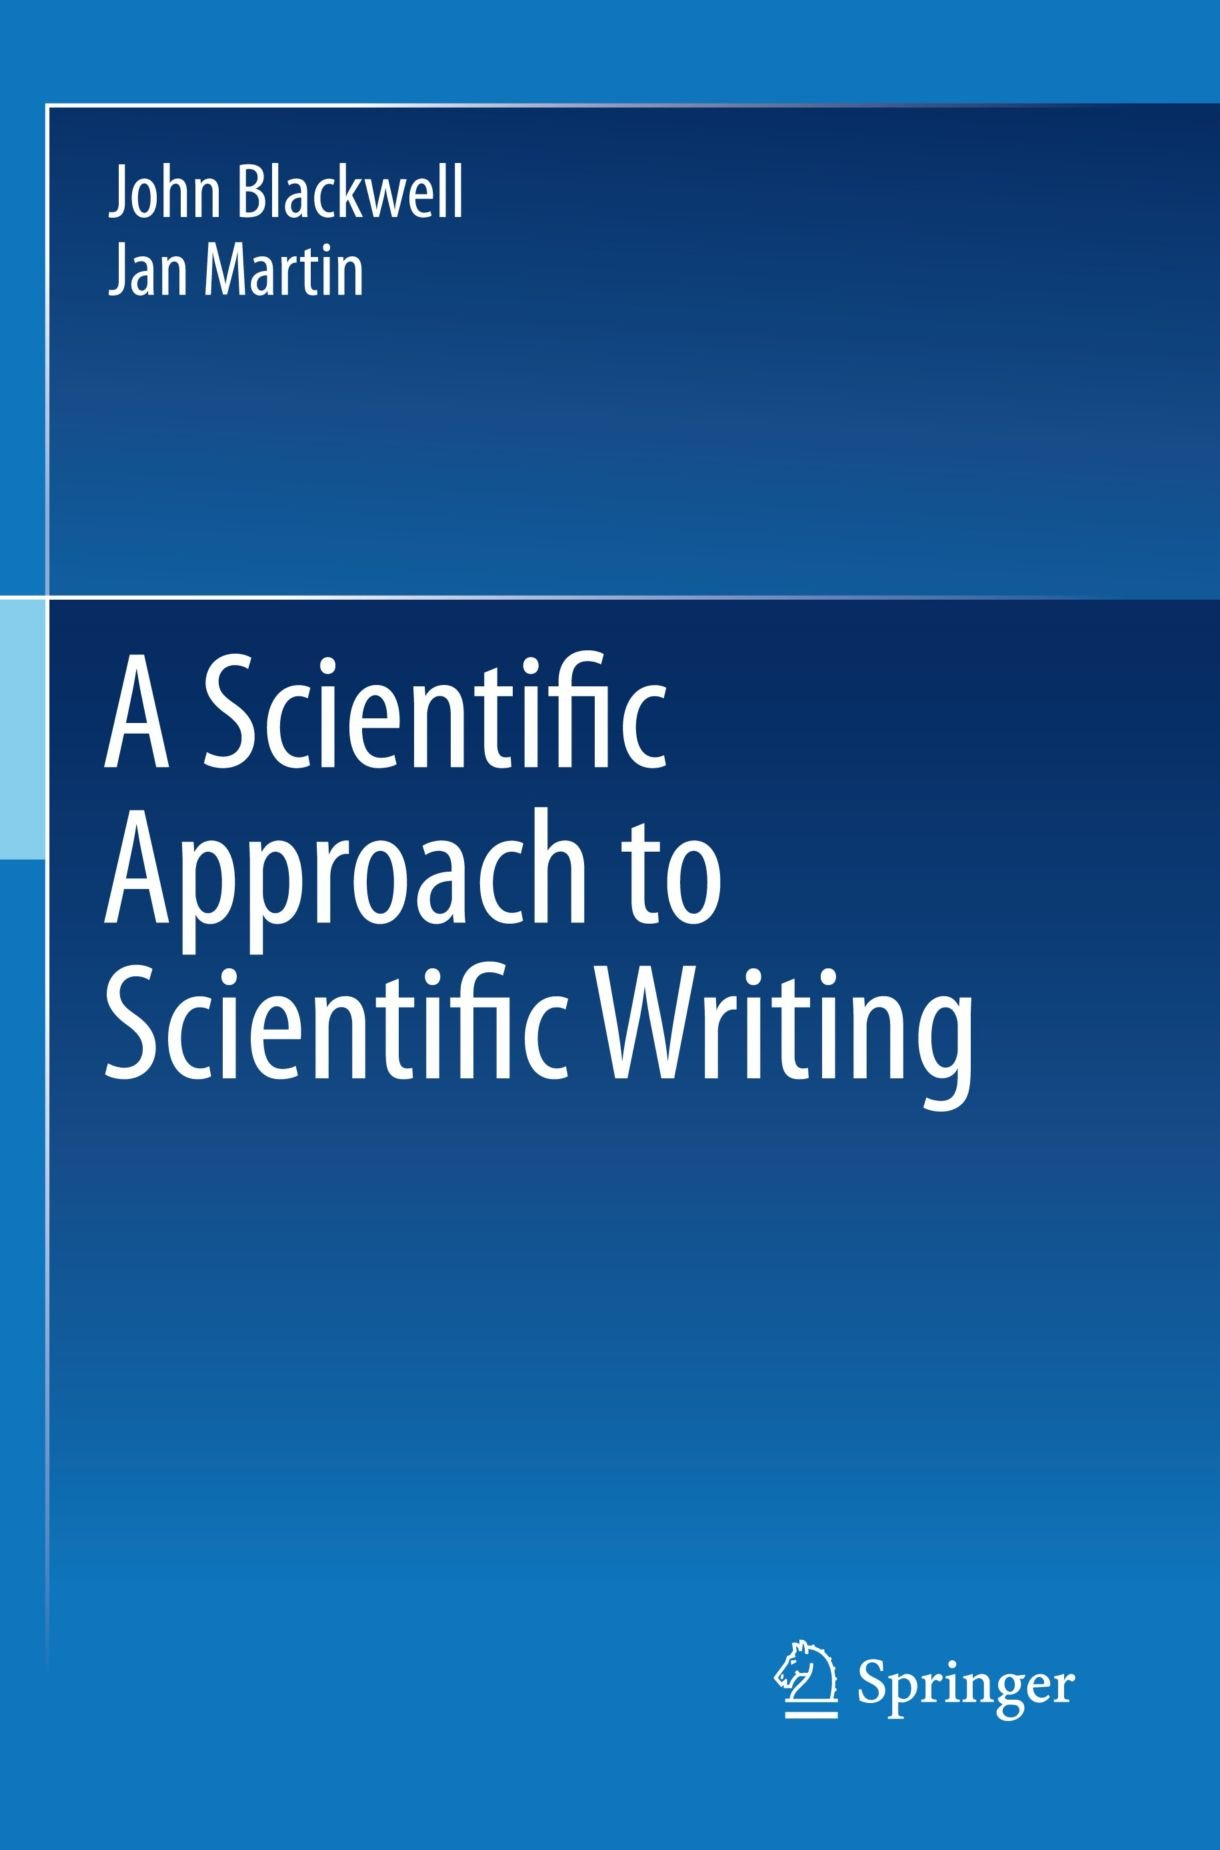 A Scientific Approach to Scientific Writing by Springer